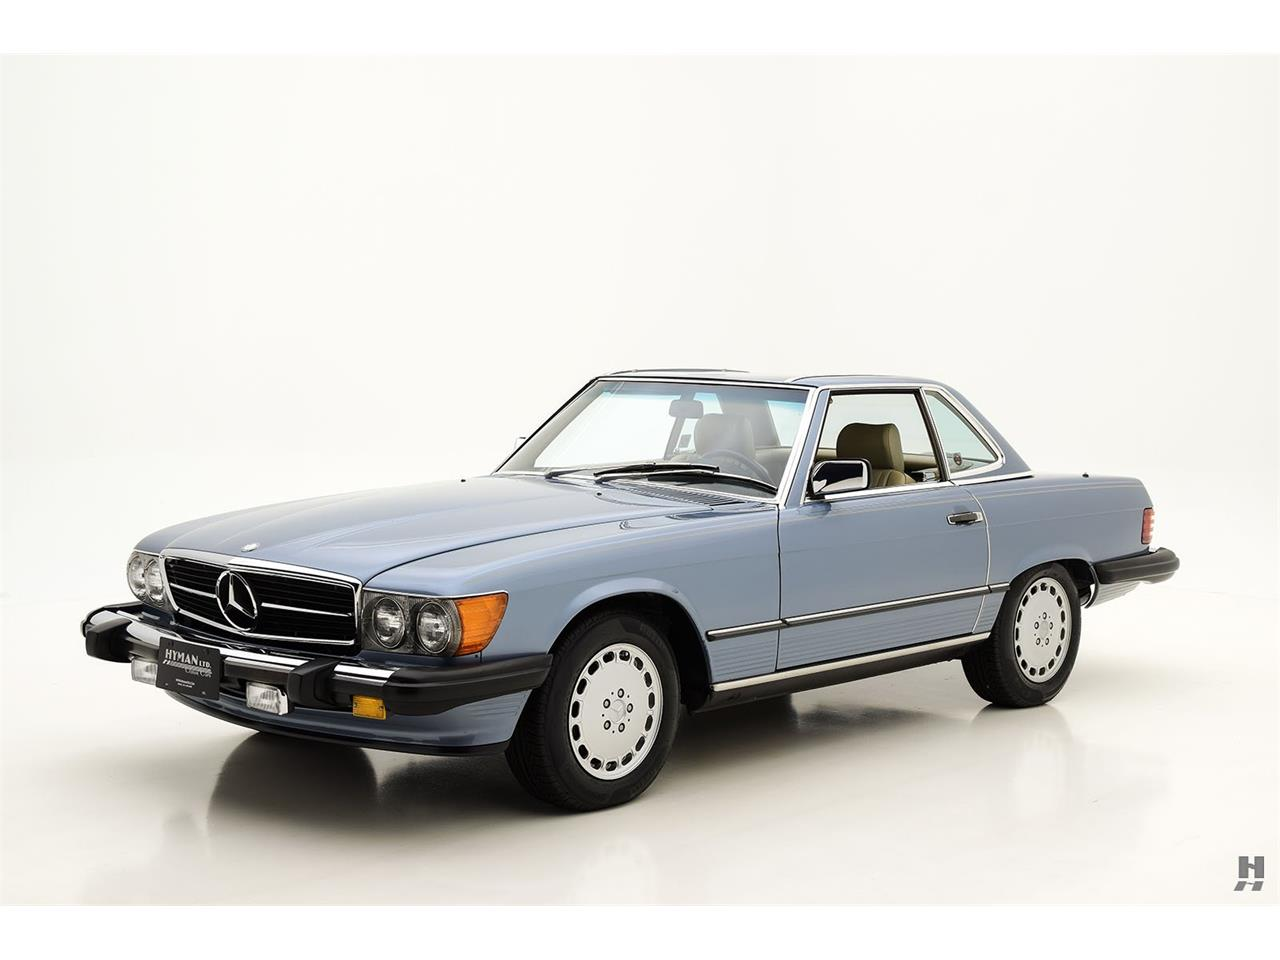 Large Picture of 1987 Mercedes-Benz 560SL located in Saint Louis Missouri Offered by Hyman Ltd. Classic Cars - LENL